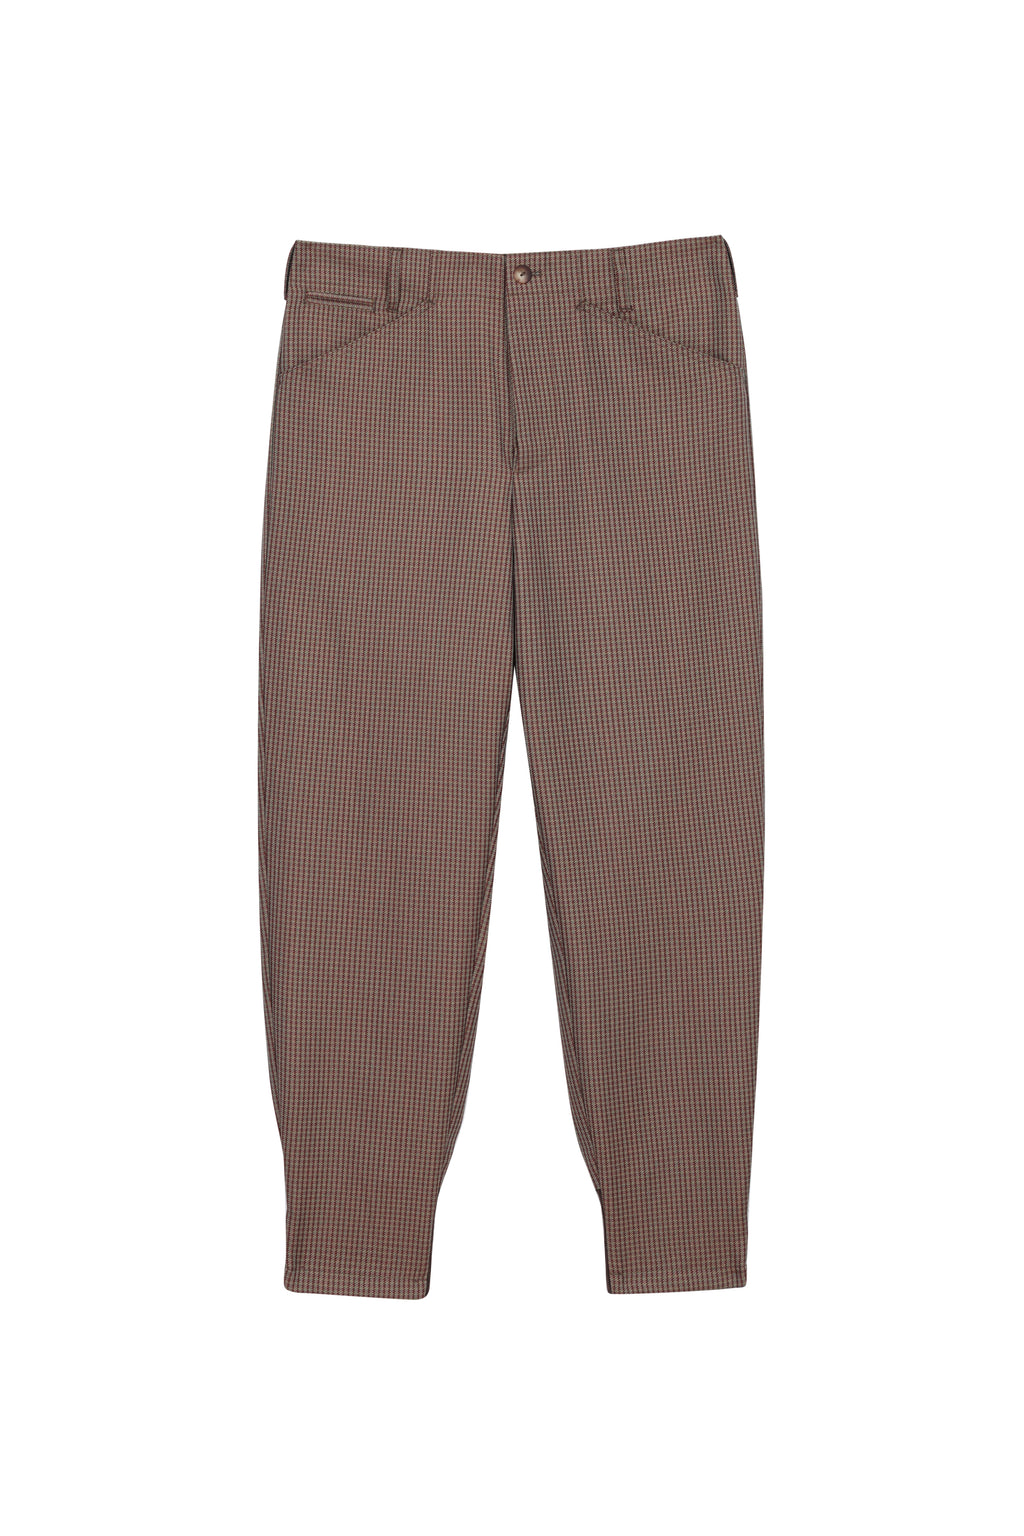 Checked Jodhpur Pants (4577627766849)